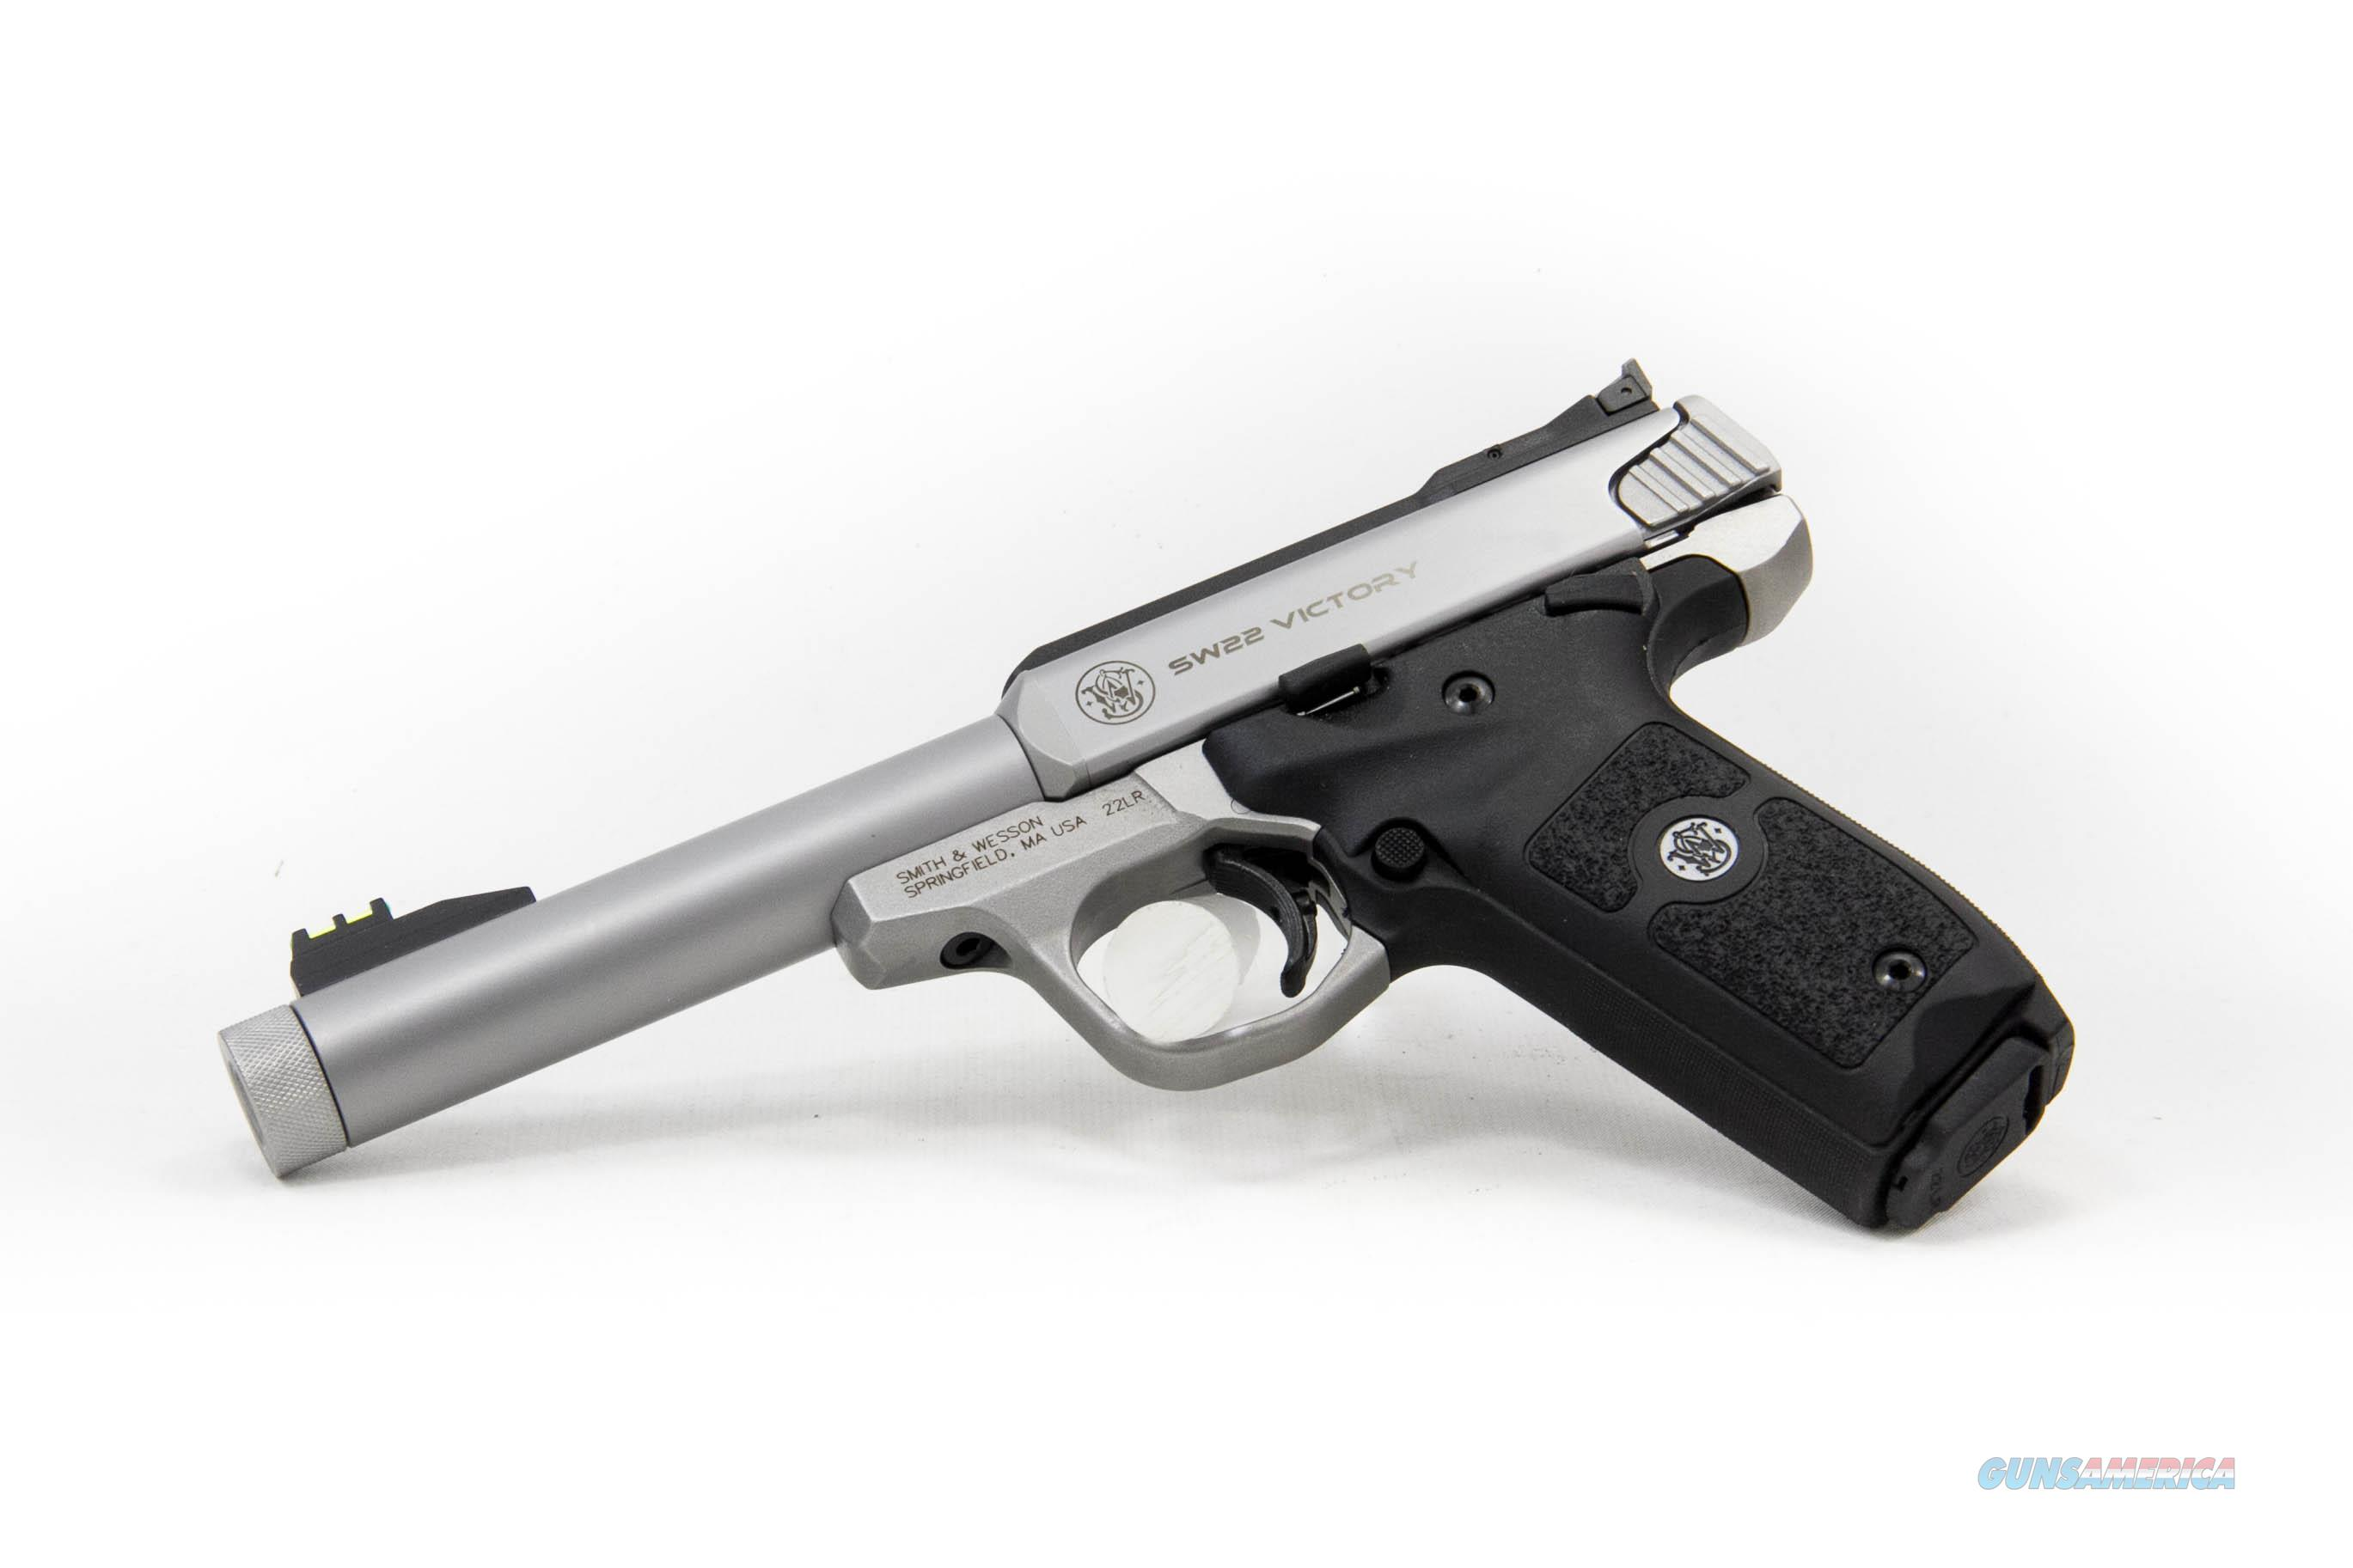 Smith and Wesson SW22 Victory, .22 long rifle, Threaded Barrel  Guns > Pistols > Smith & Wesson Pistols - Autos > .22 Autos